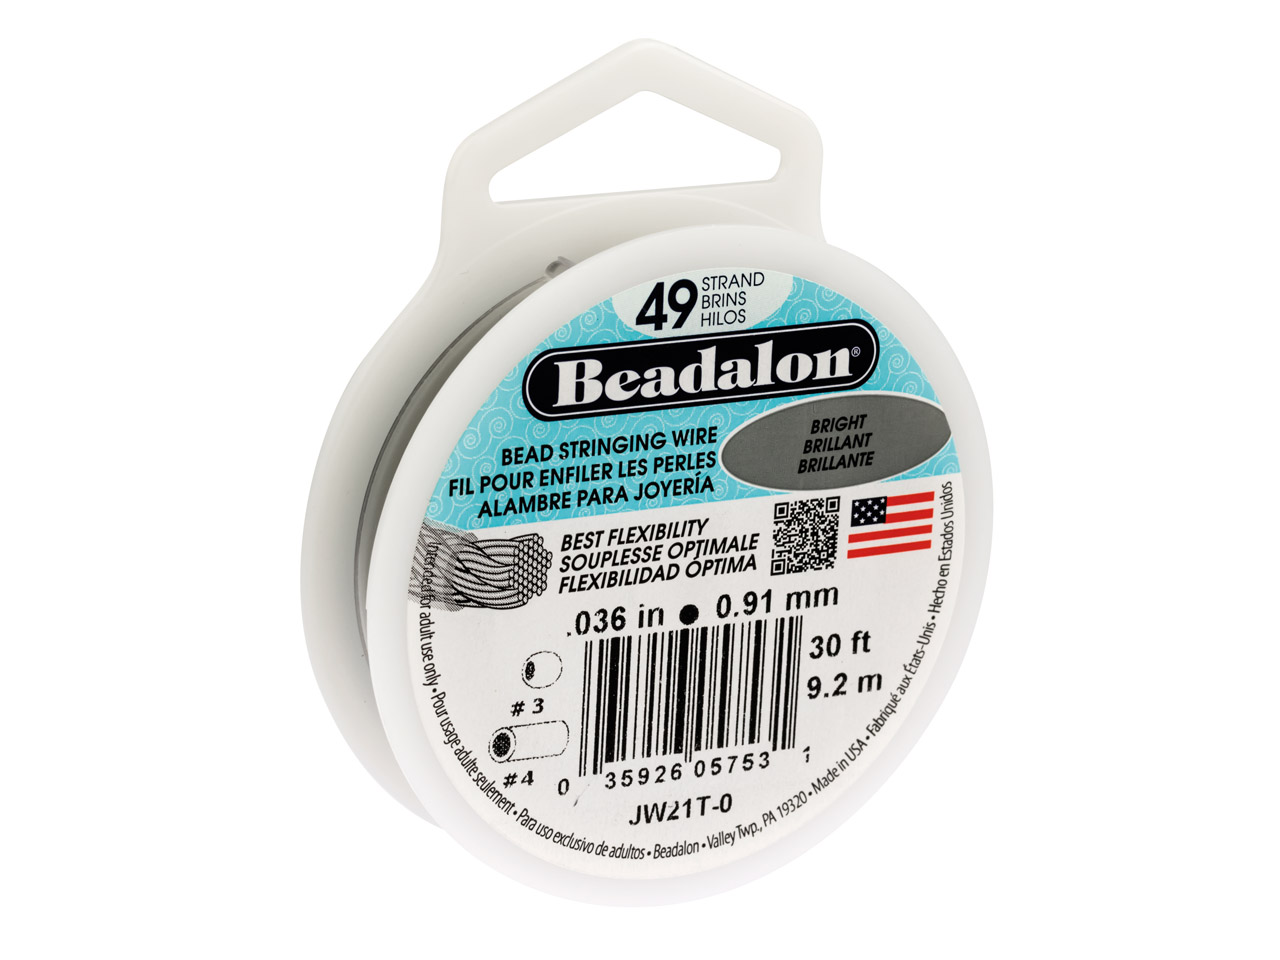 Beadalon 49 Strand Bright 0.91mm X 9.2m Wire